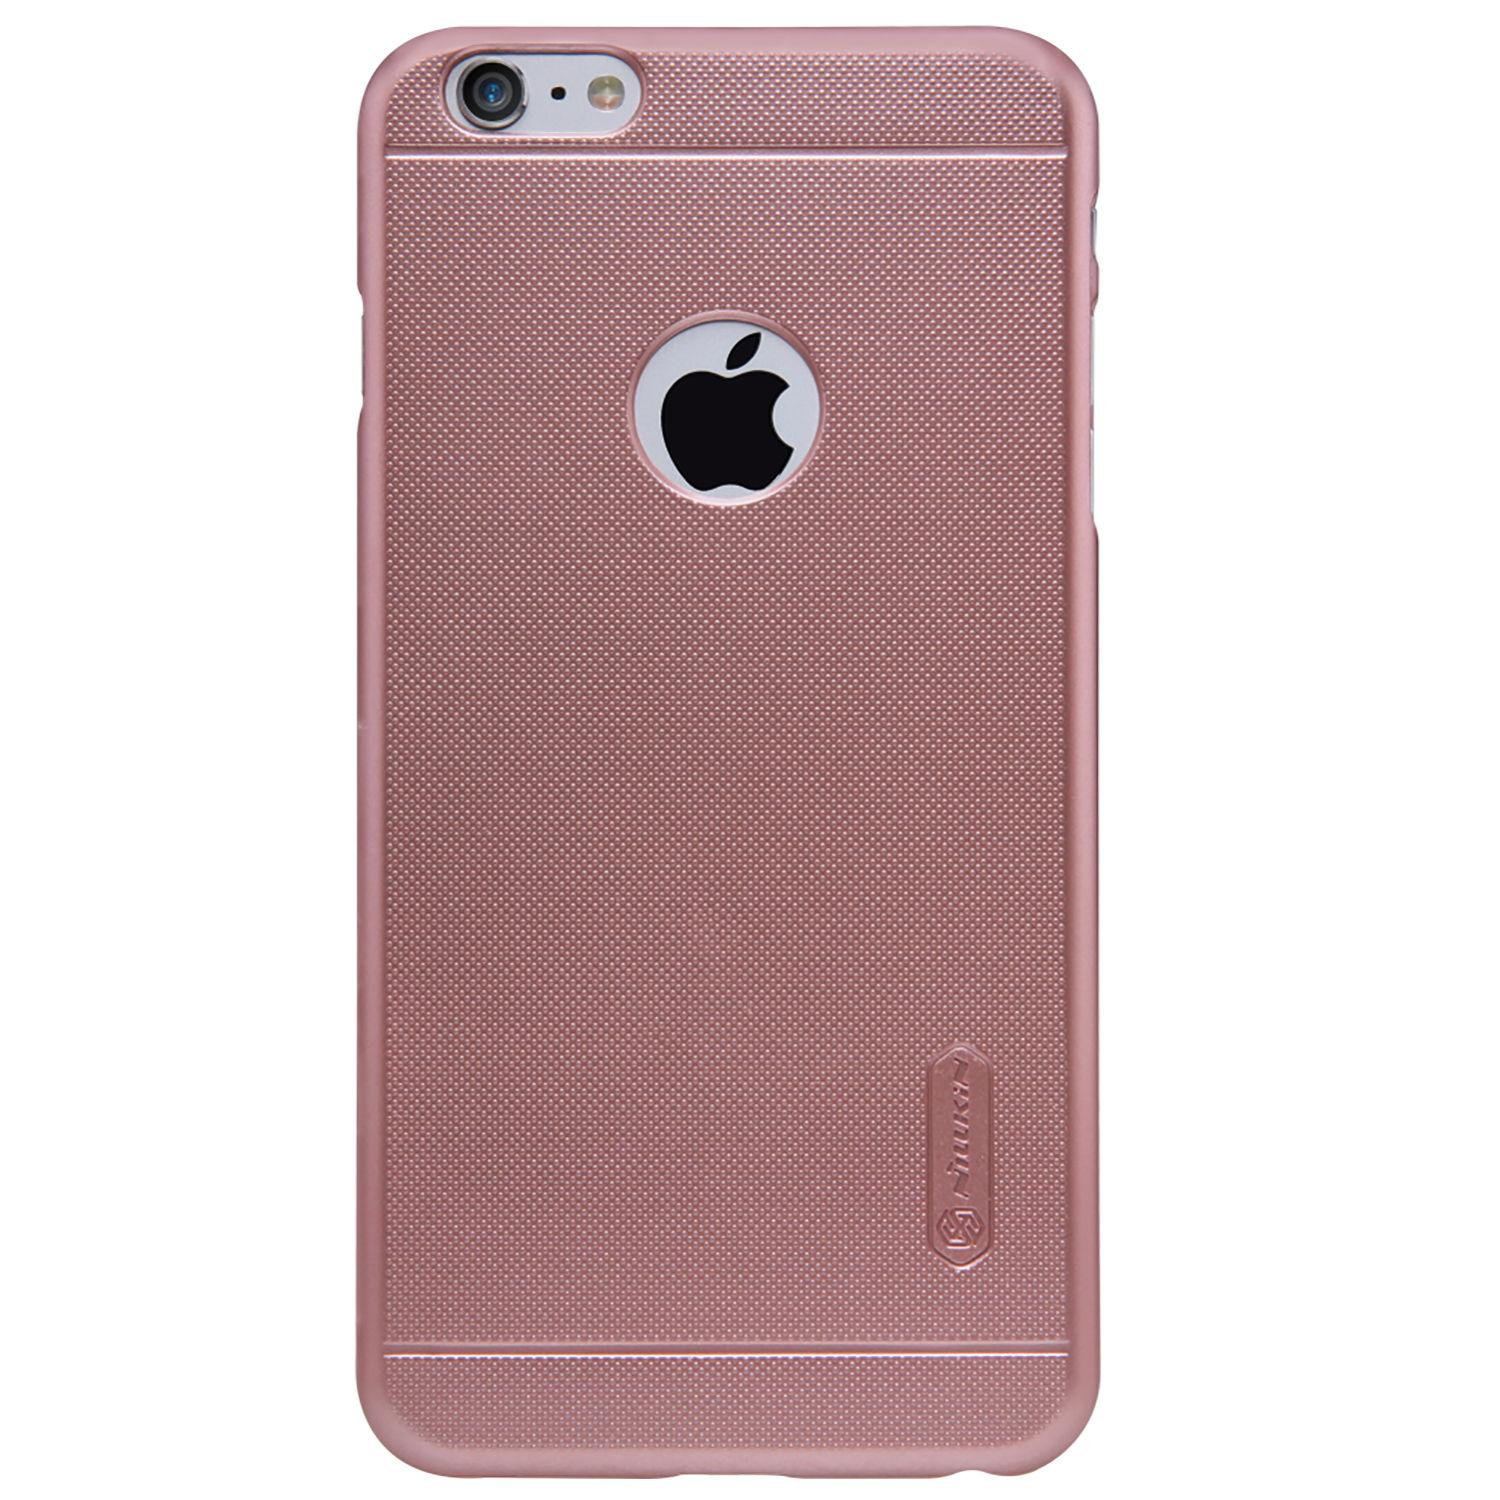 Nillkin Super Frosted Shield Iphone 6/6s Warna Rose Gold